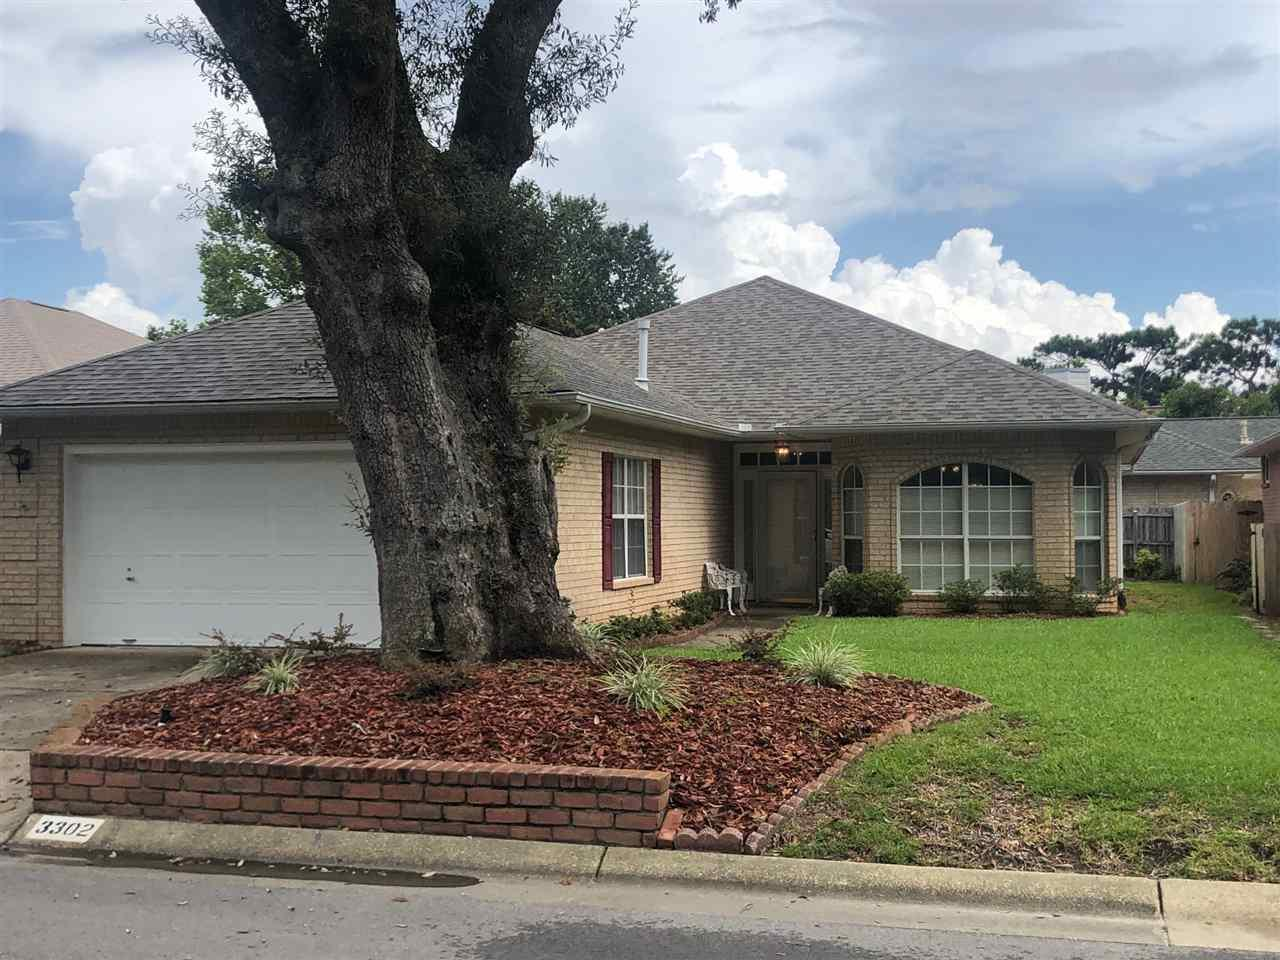 This is a wonderful small cul-de-sac neighborhood with very little traffic and only 8 homes.  This one owner brick patio home is well maintained and gently used.  The private master suite has a large full bath, two walk in closets, double vanities, separate shower and nice whirlpool garden tub.  The other two rooms share a full bath and nice separation by living area/kitchen from the master suite. The living area has crown molding and baseboards throughout.  The kitchen is open to the living/dining area and has nice bay window for the kitchen table.  The living room has natural light and a sliding door leading to a nice covered patio.  The back fence is a new wooden privacy fence.  The yard is small and manageable with plenty of room for raised bed garden.  A new dimensional roof was installed 2017 by Charlie Sapp Roofing.  A new A/C was installed in 2011 as well as new Amercian Standard 2.5 ton heat pump.  The stove is a 2014 Kenmore.  (All appliances are Kenmore). The home will be professionally cleaned and in move-in ready condition for the next happy owner! There is a termite bond on the home and will be professionally cleaned and move in ready!